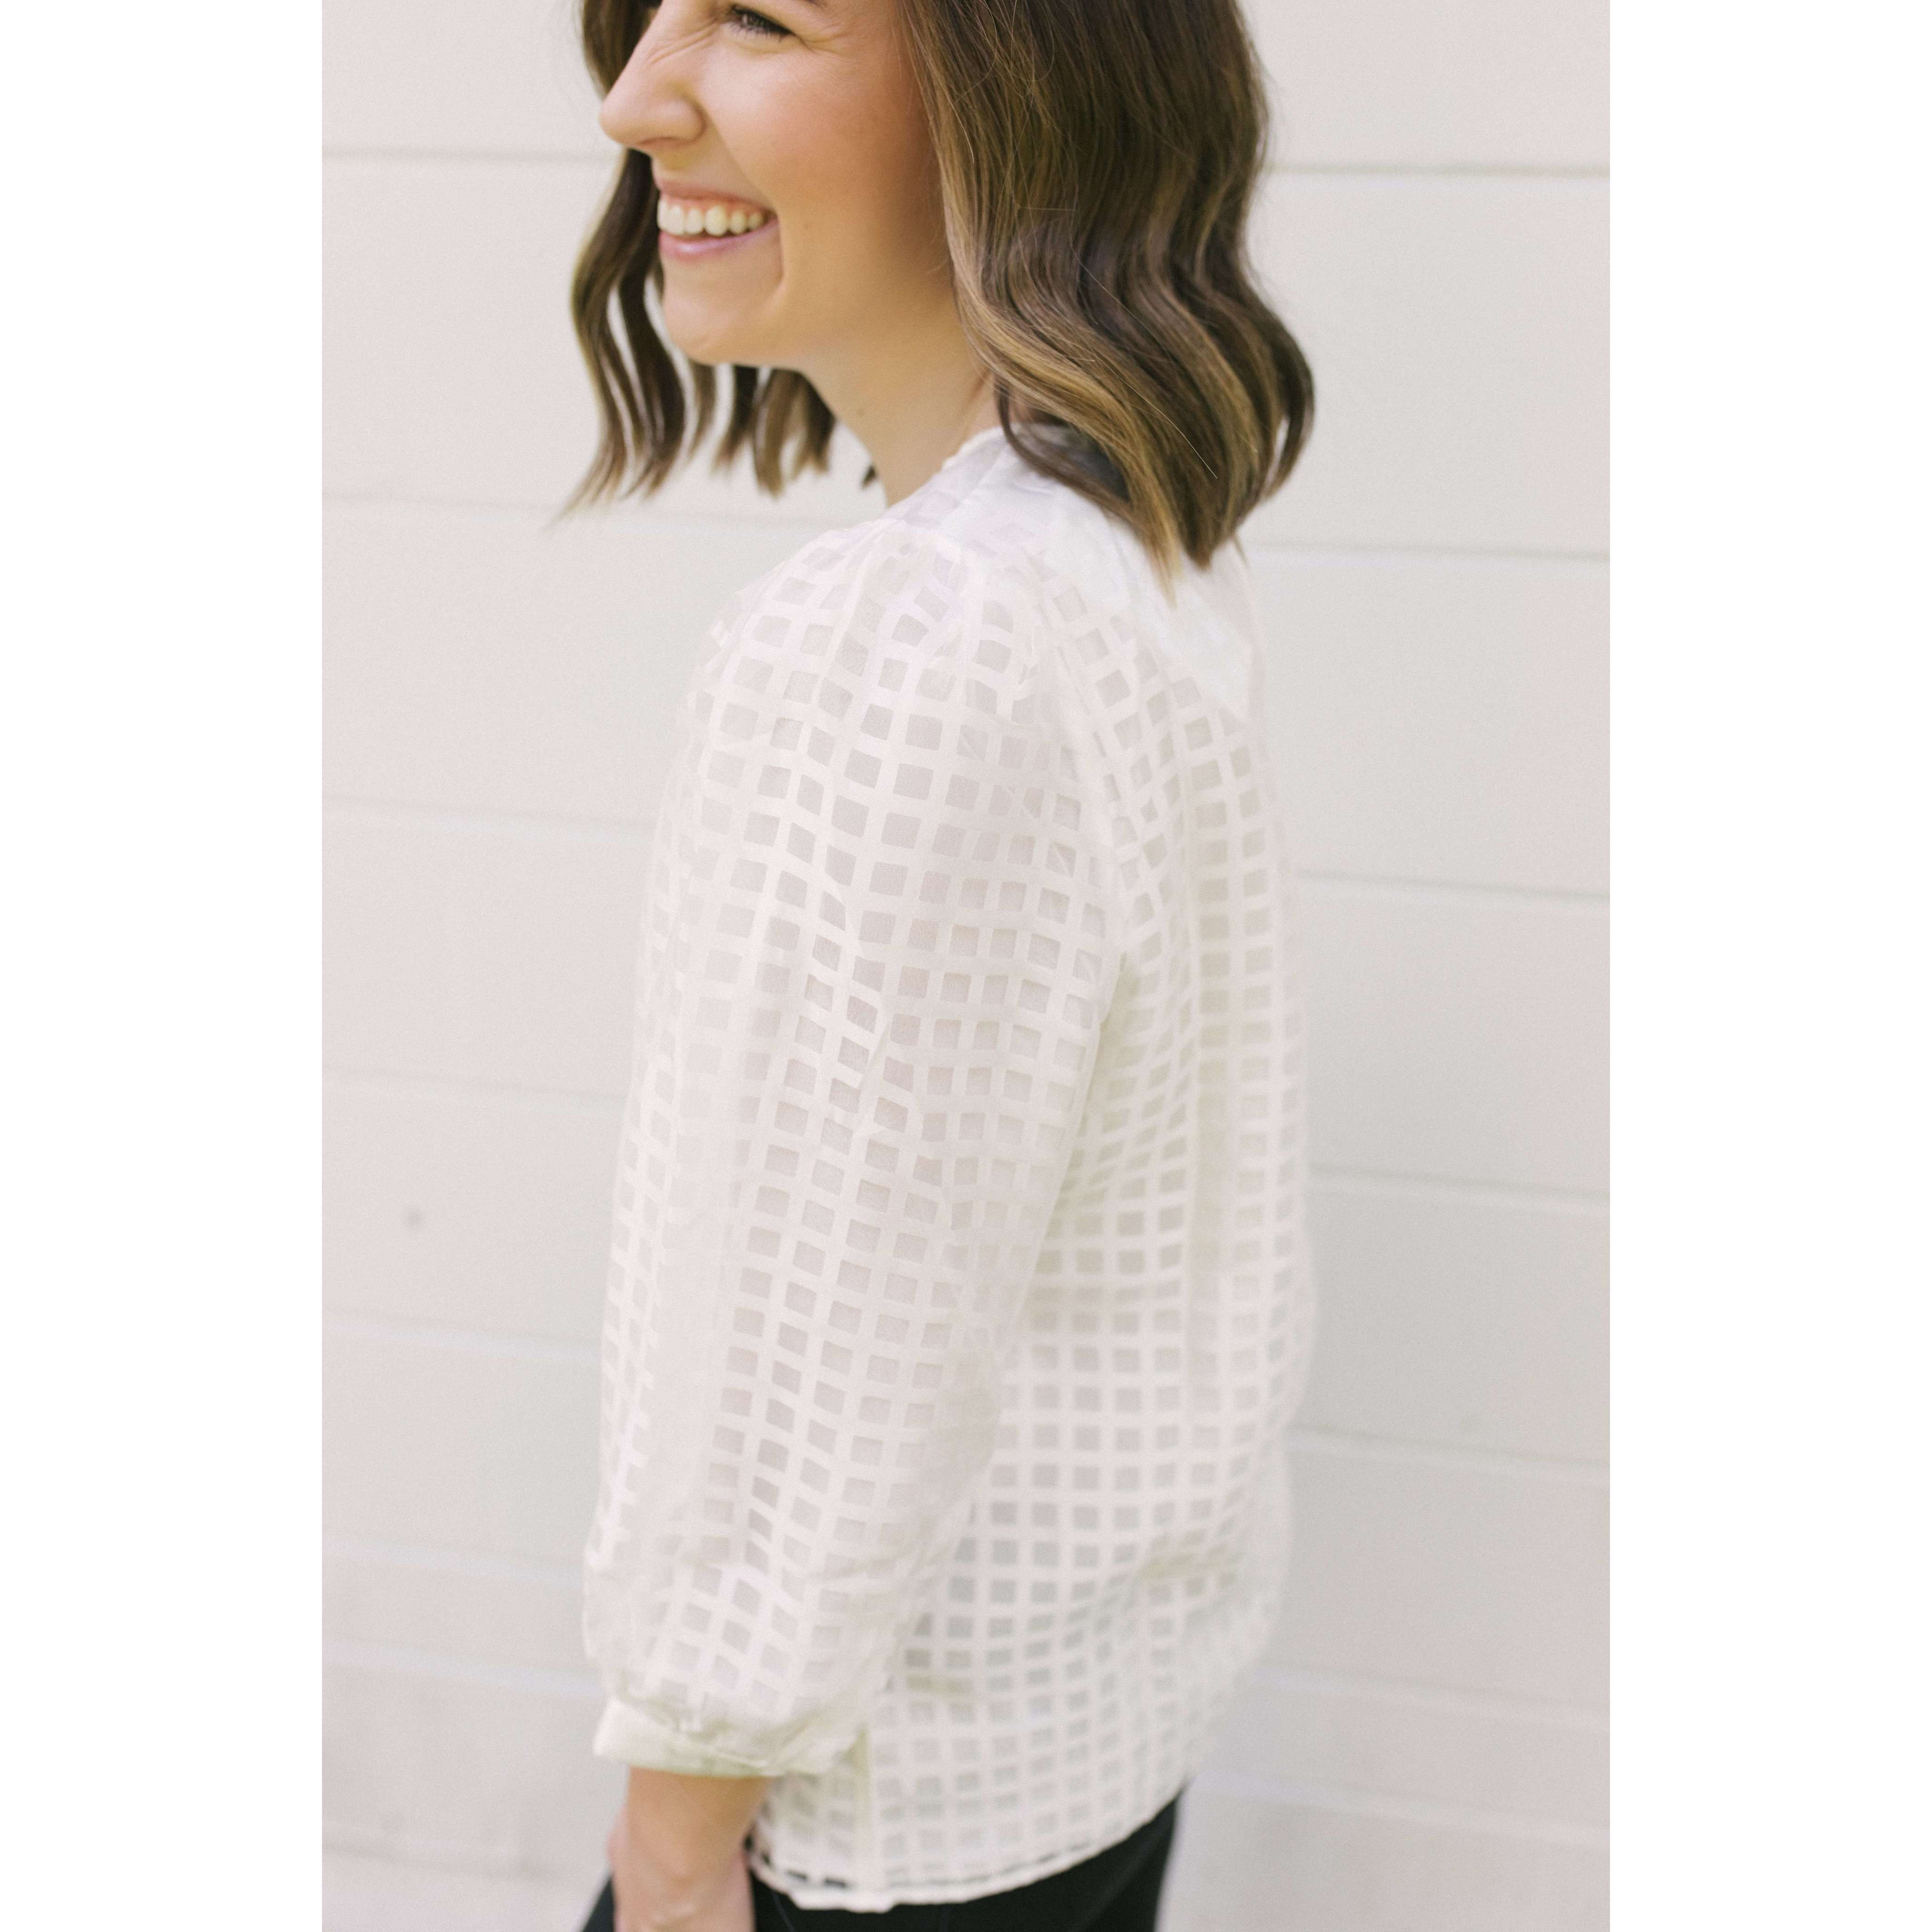 8.28 Boutique:Jade Melody Tam,Jade by Melody Tam White Check Puff Sleeve Blouse,Tops